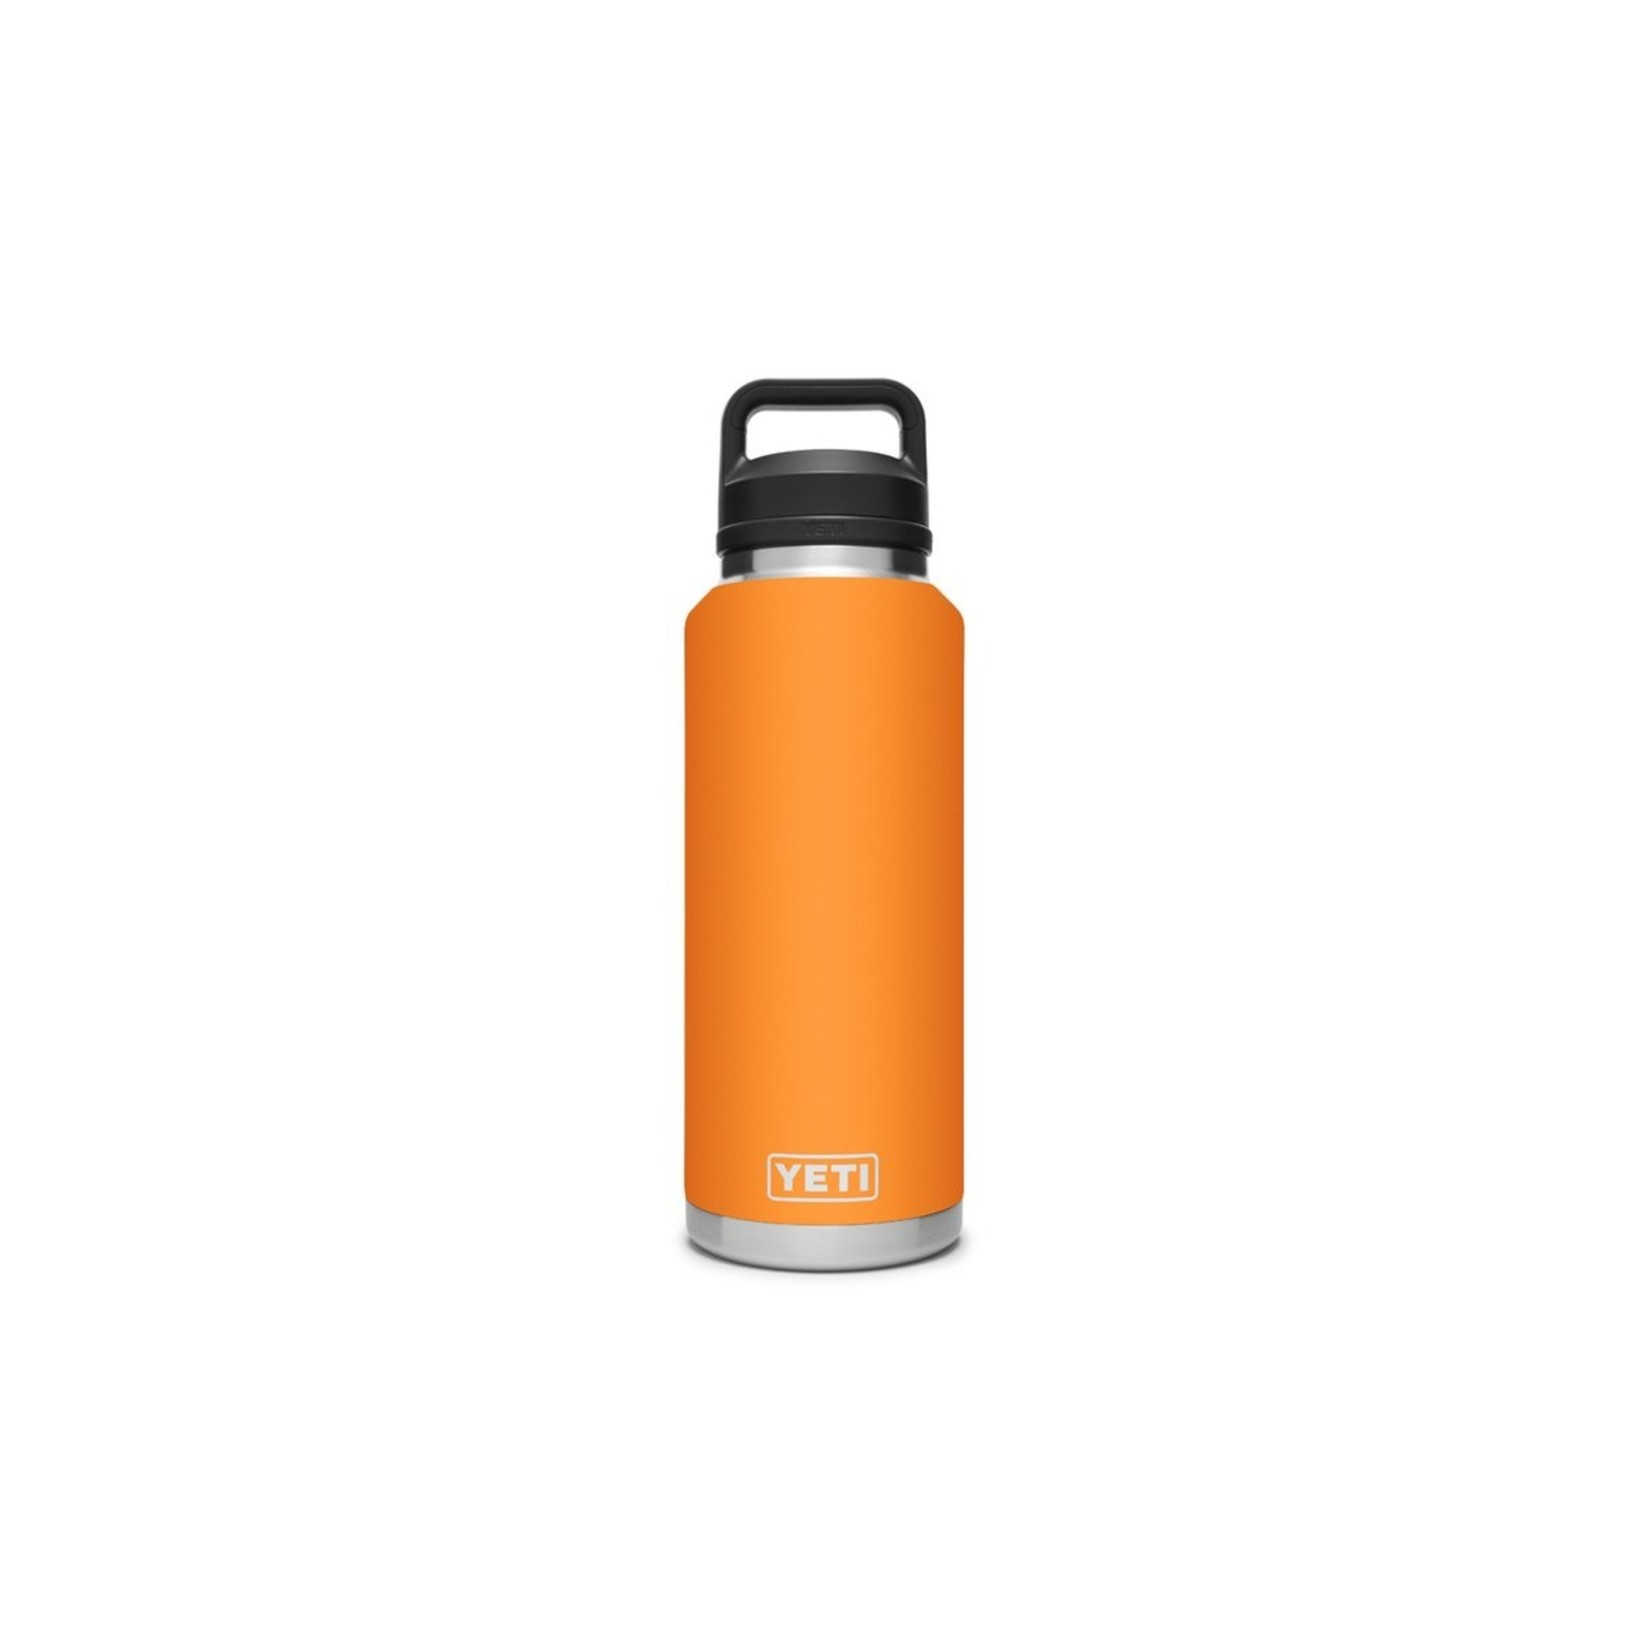 Yeti Yeti Rambler 46 Oz Bottle Chug